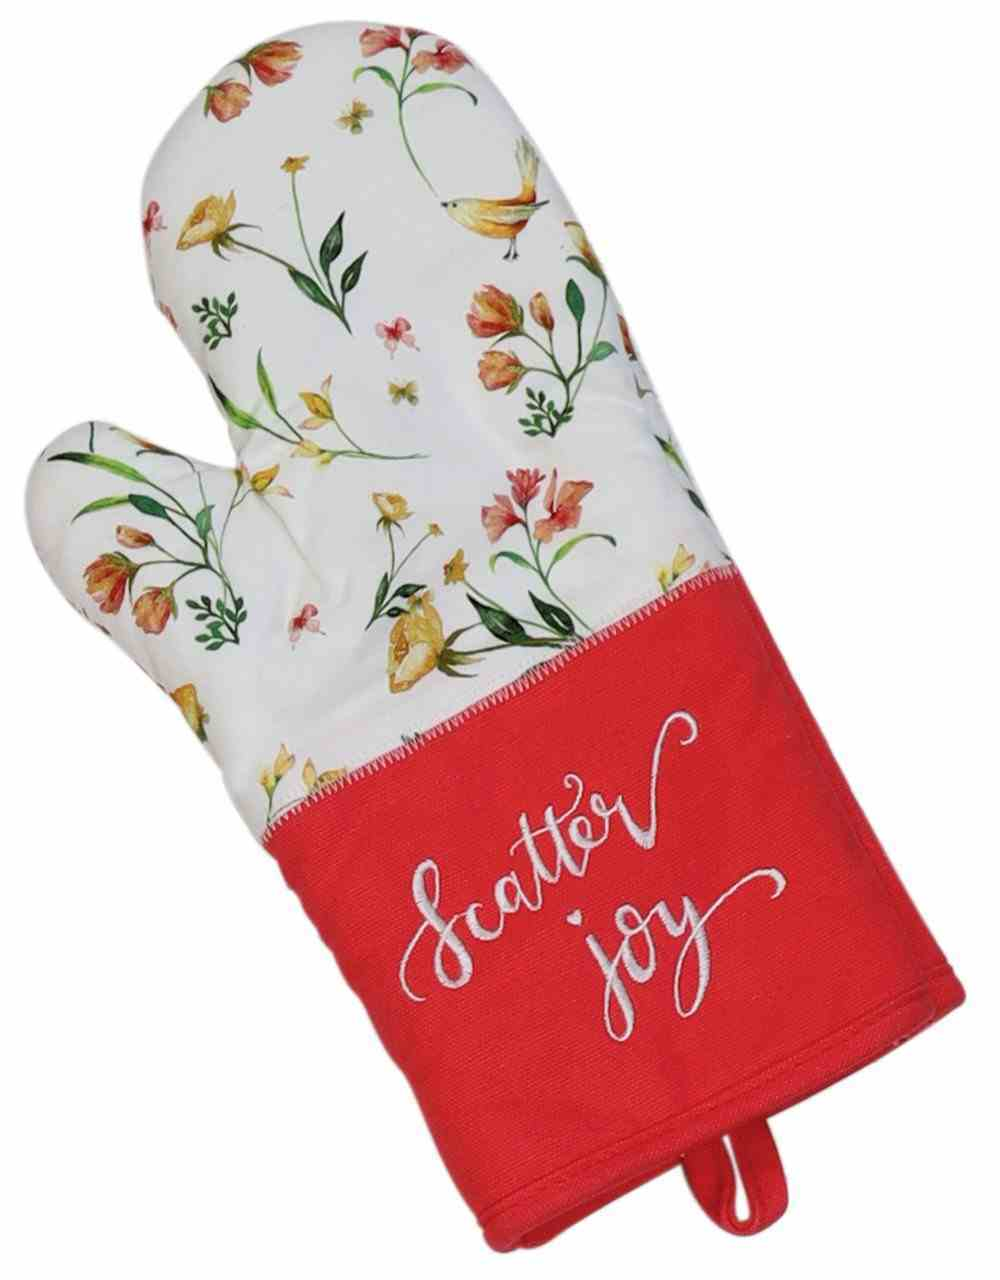 Oven Mitt- Scatter Joy, Pink With Embroidery, White Floral (Scatter Joy Collection) Soft Goods